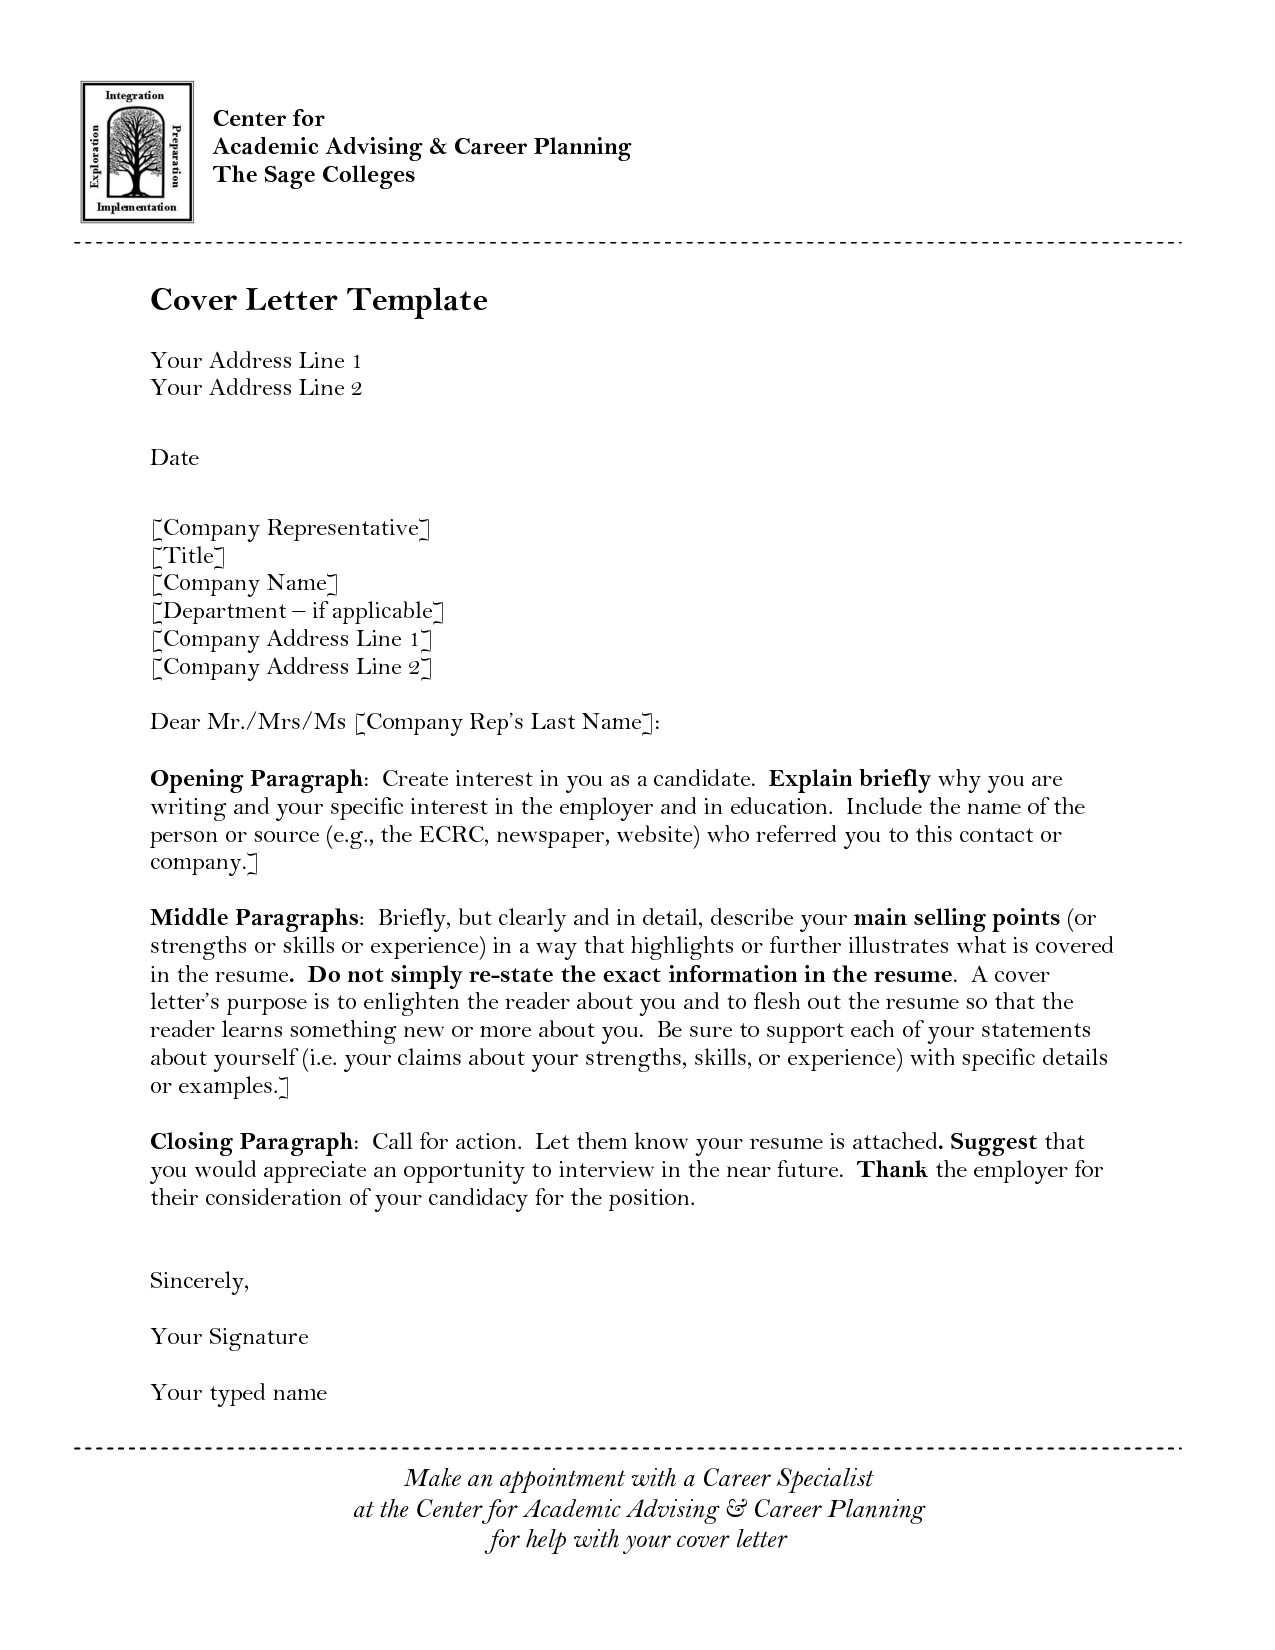 Conditional Offer Of Employment Letter Template - Cover Letter Example University Job Best Best solutions Cover Letter